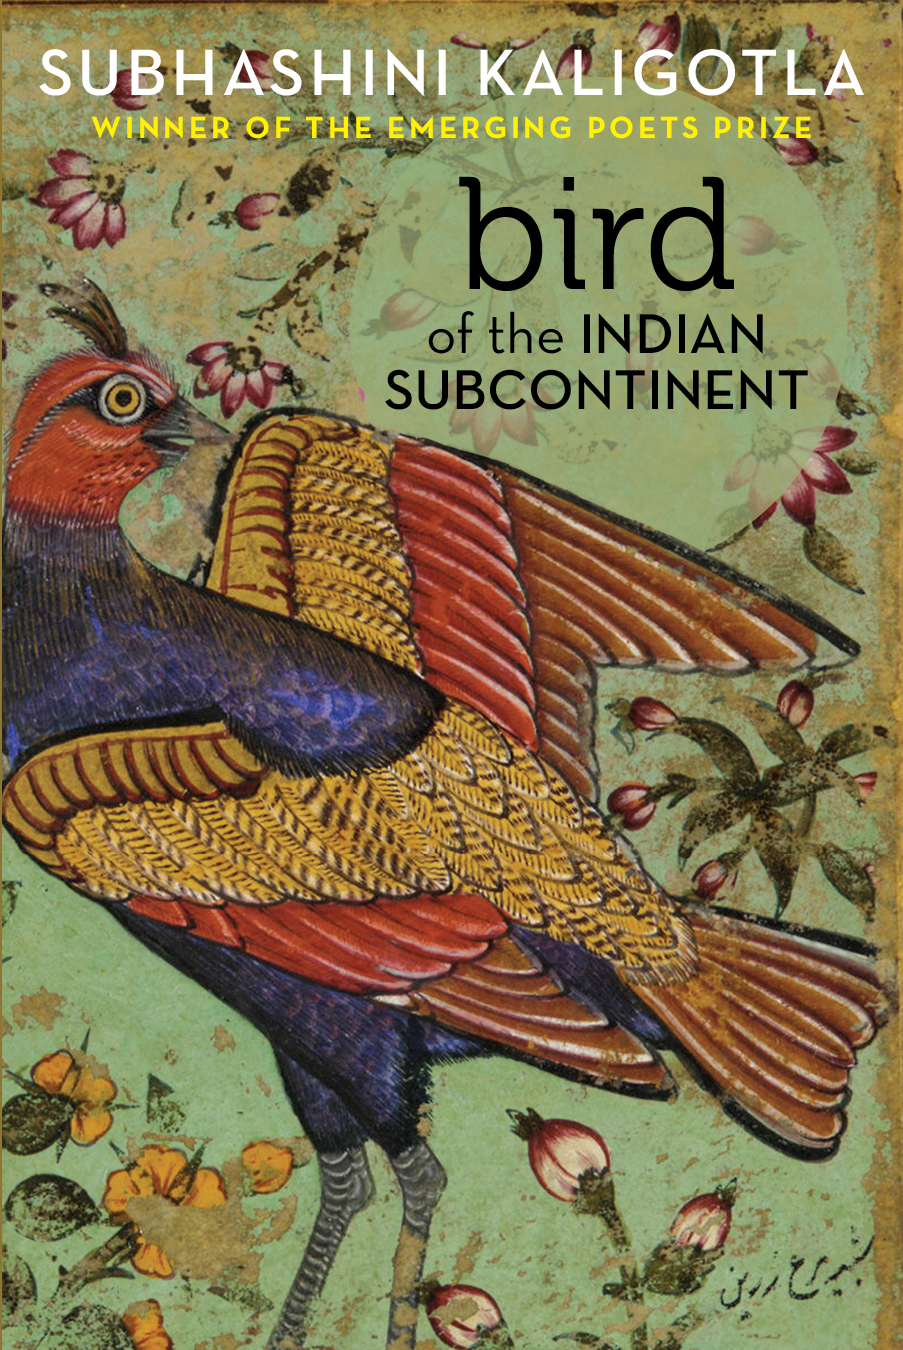 Bird of the Indian Subcontinent